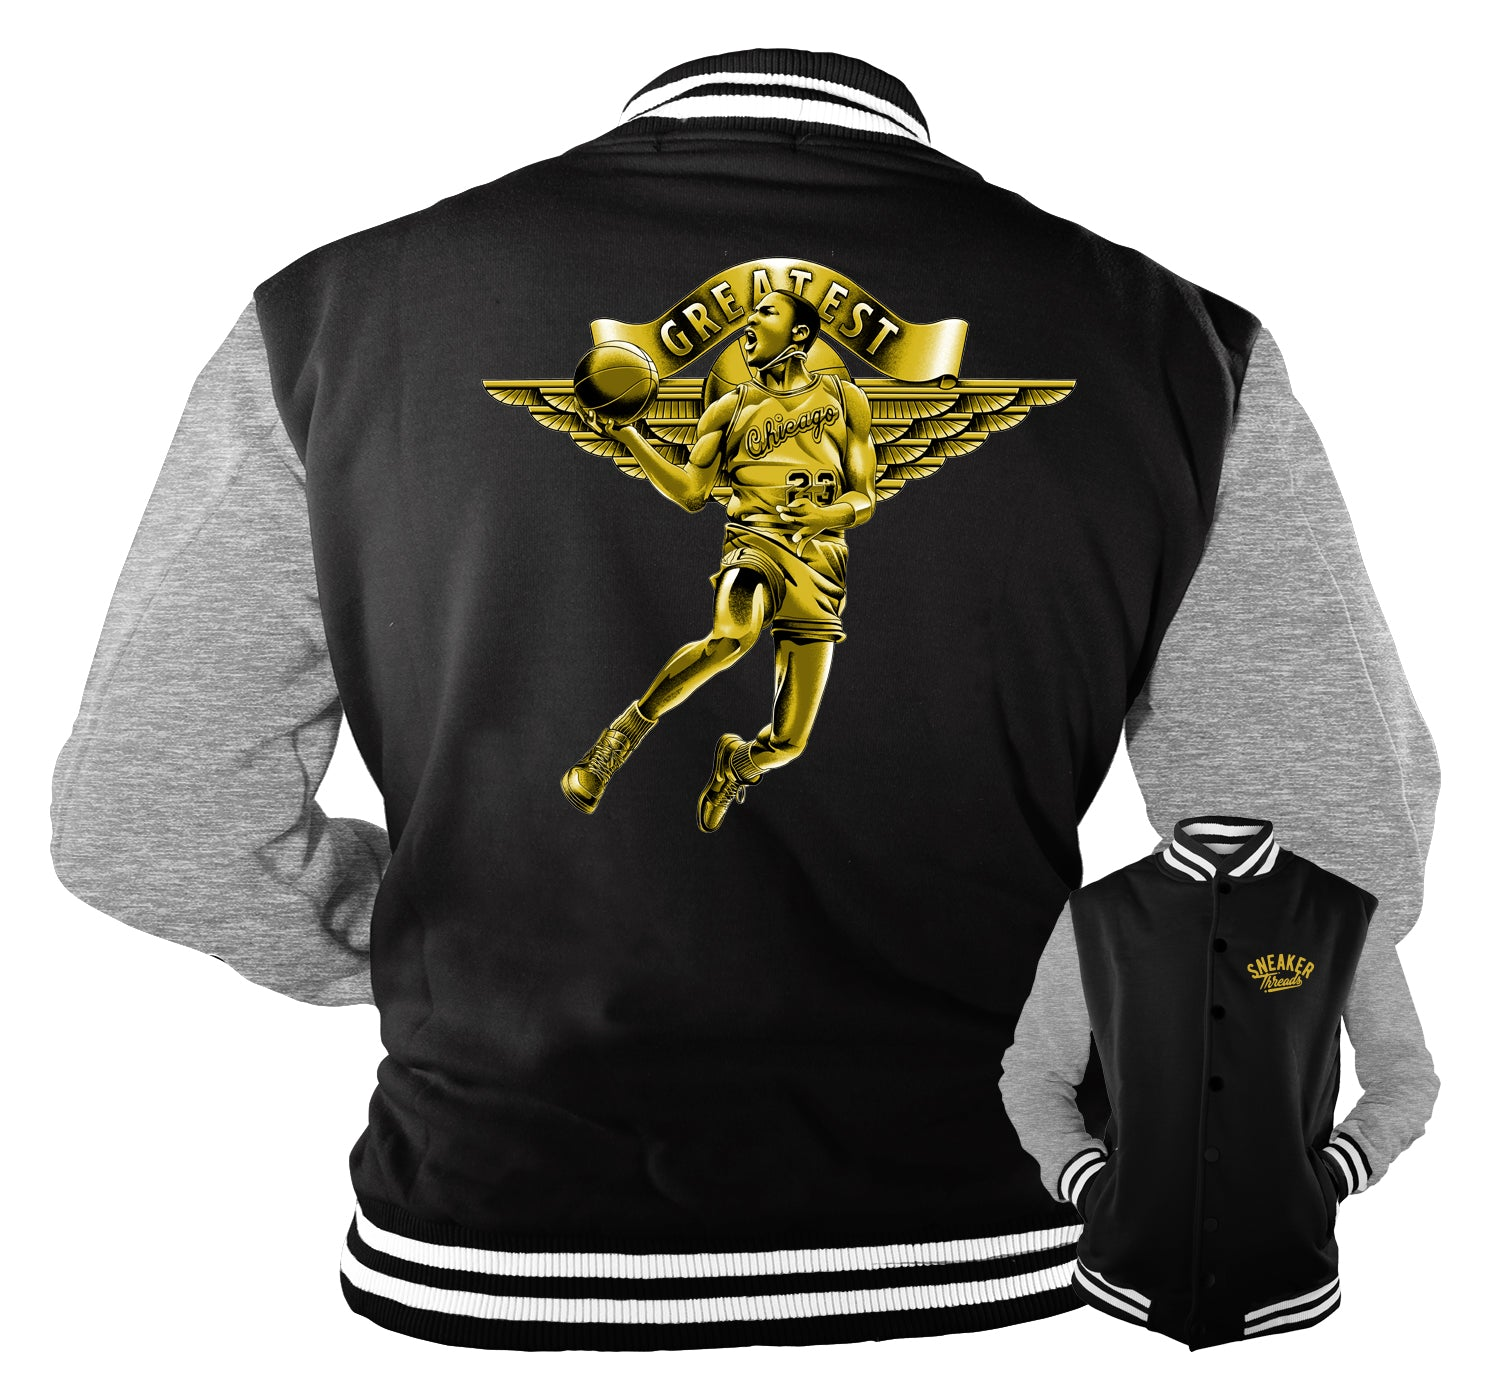 Jordan 1 black gold sneaker jackets